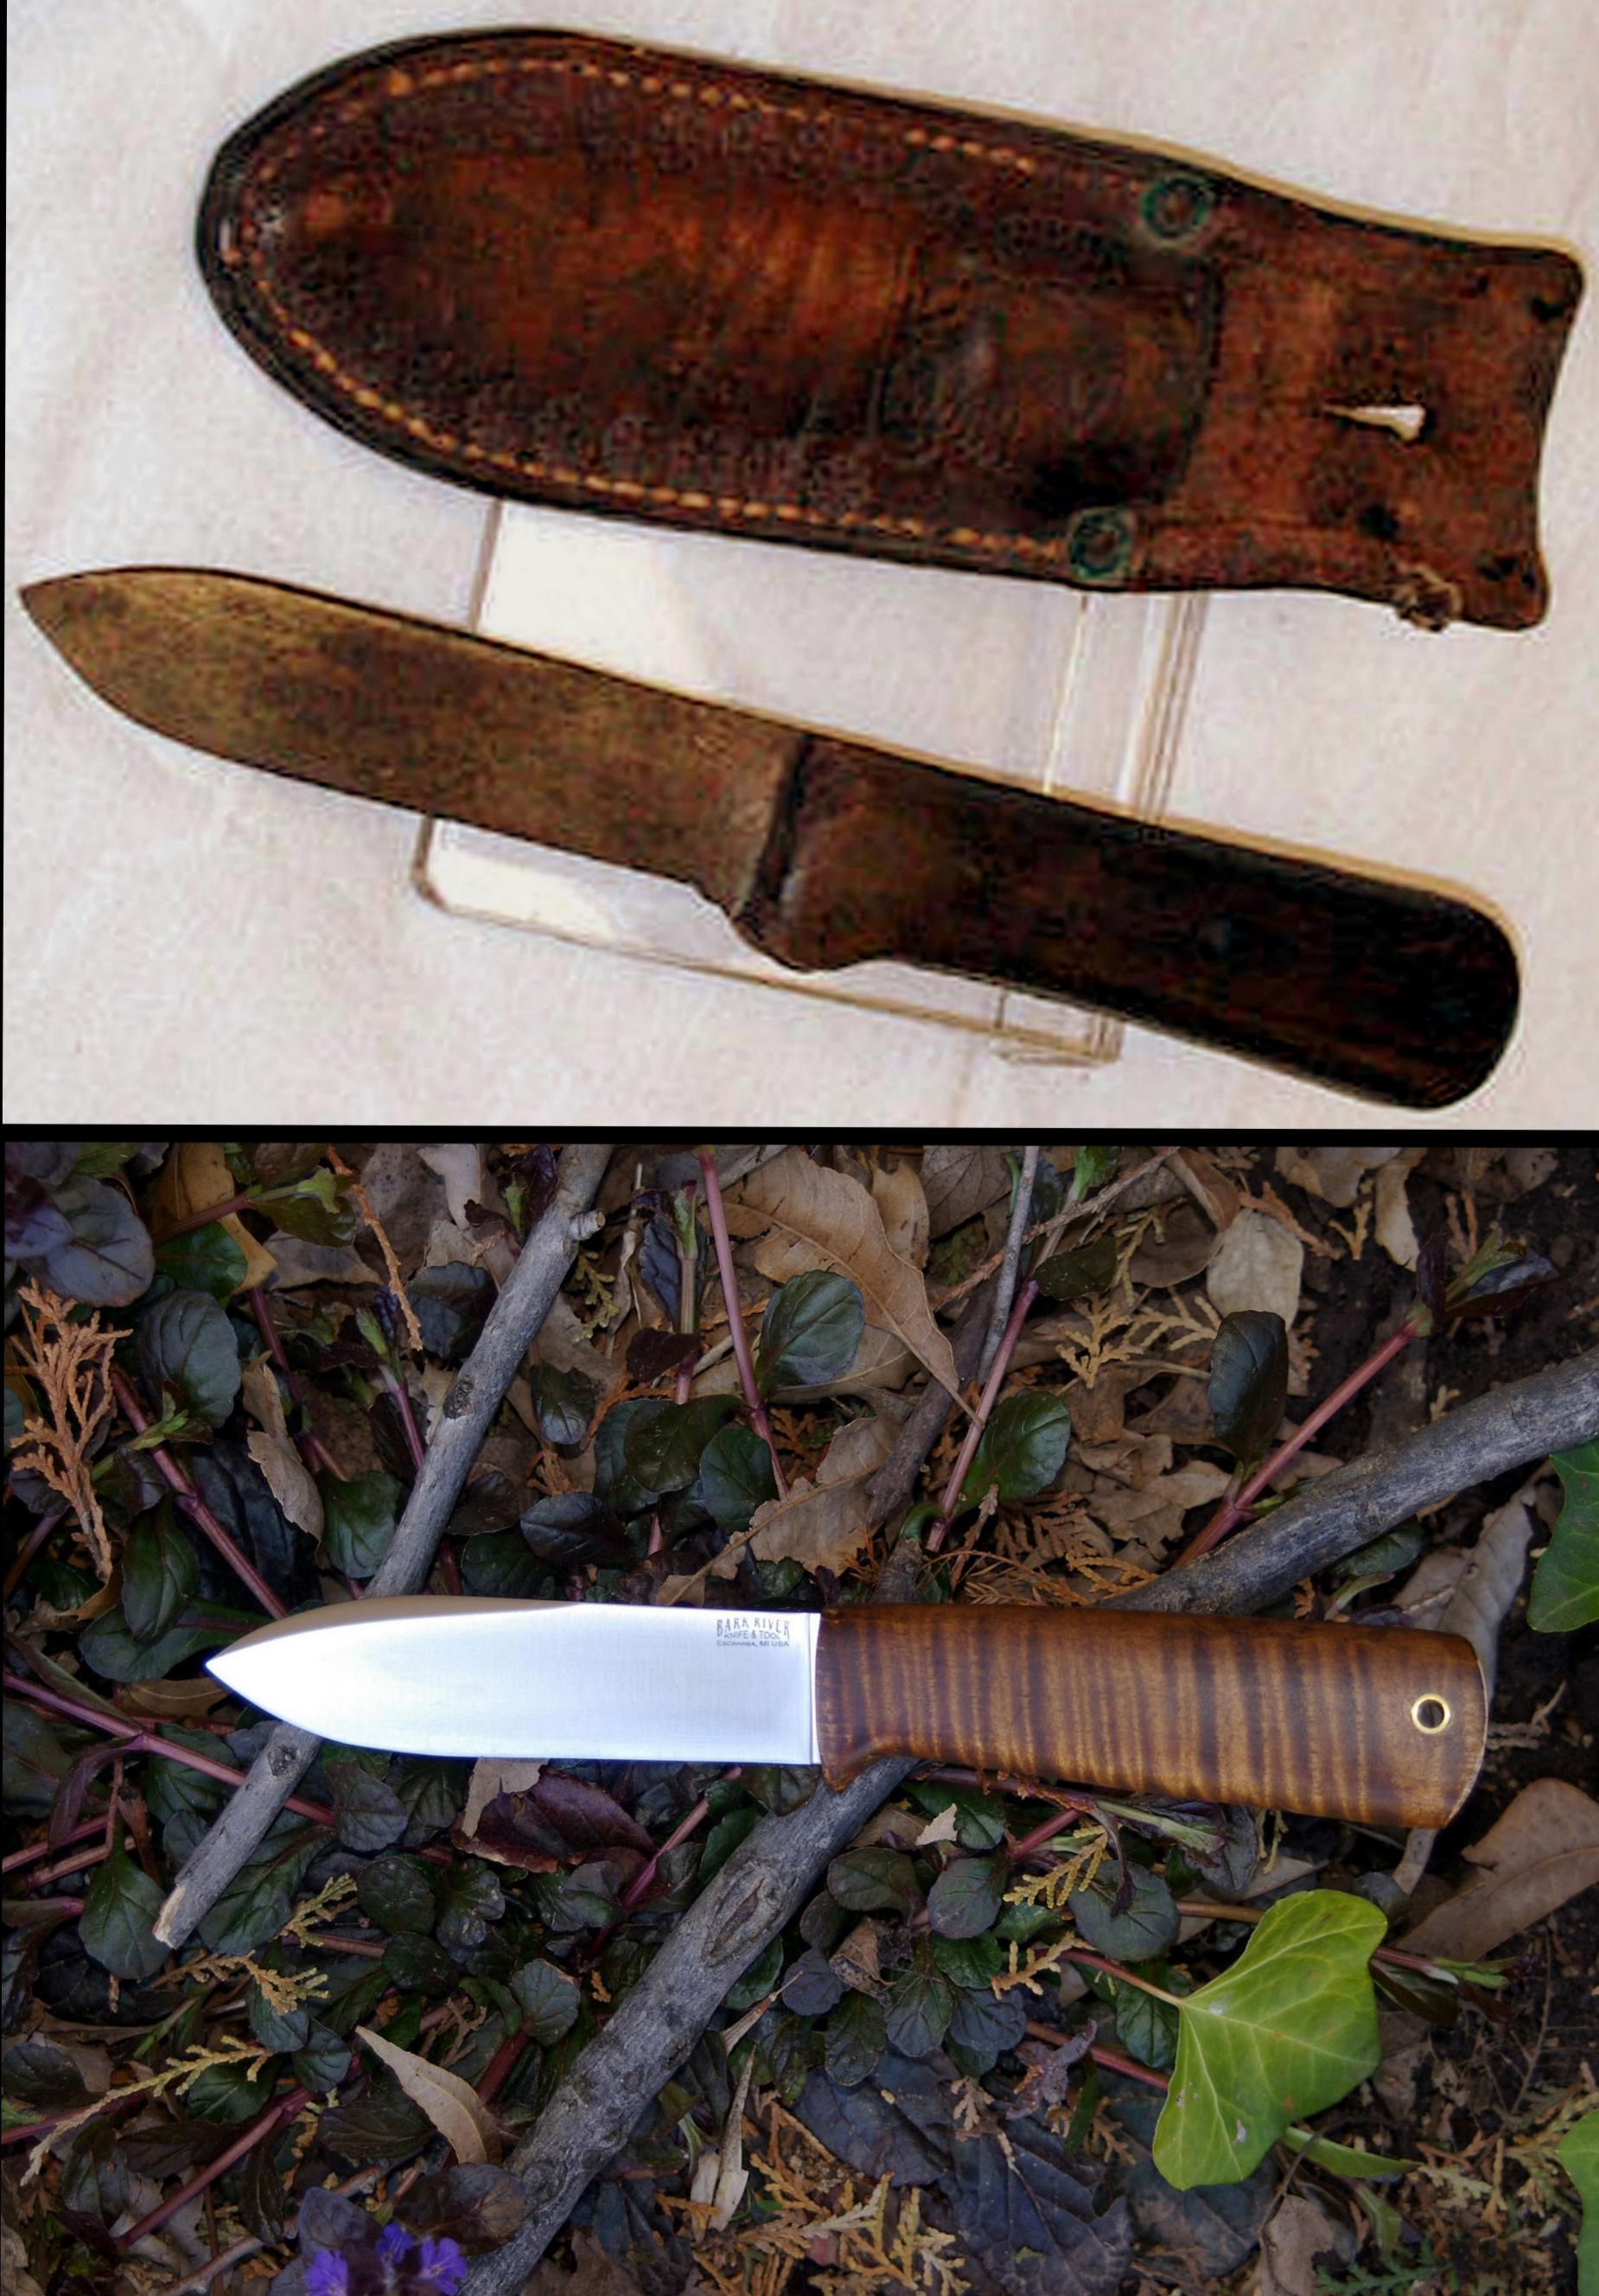 The Wilderness Knife The Woods Life